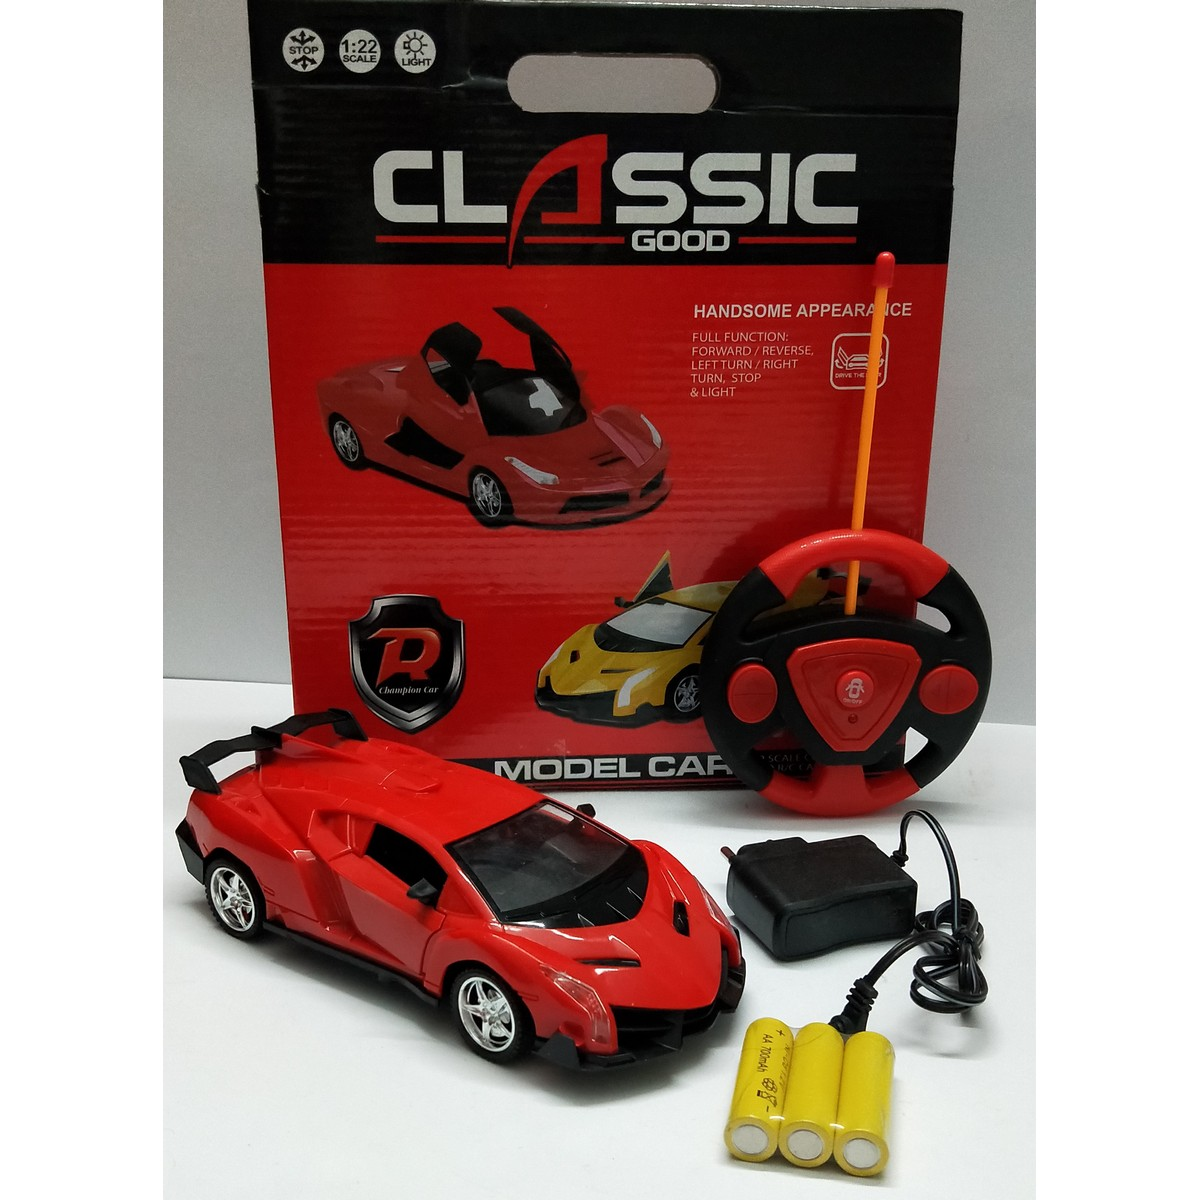 Premium Quality Remote Control Sports Model Car, Champion Car,  Full Function: Forward/Reverse/Turn Left and Right/ Stop, Excellent toy for kids/boys/girls, Newest articles imported China toys cars/ gifts, Cars, Trains & Bikes Toys